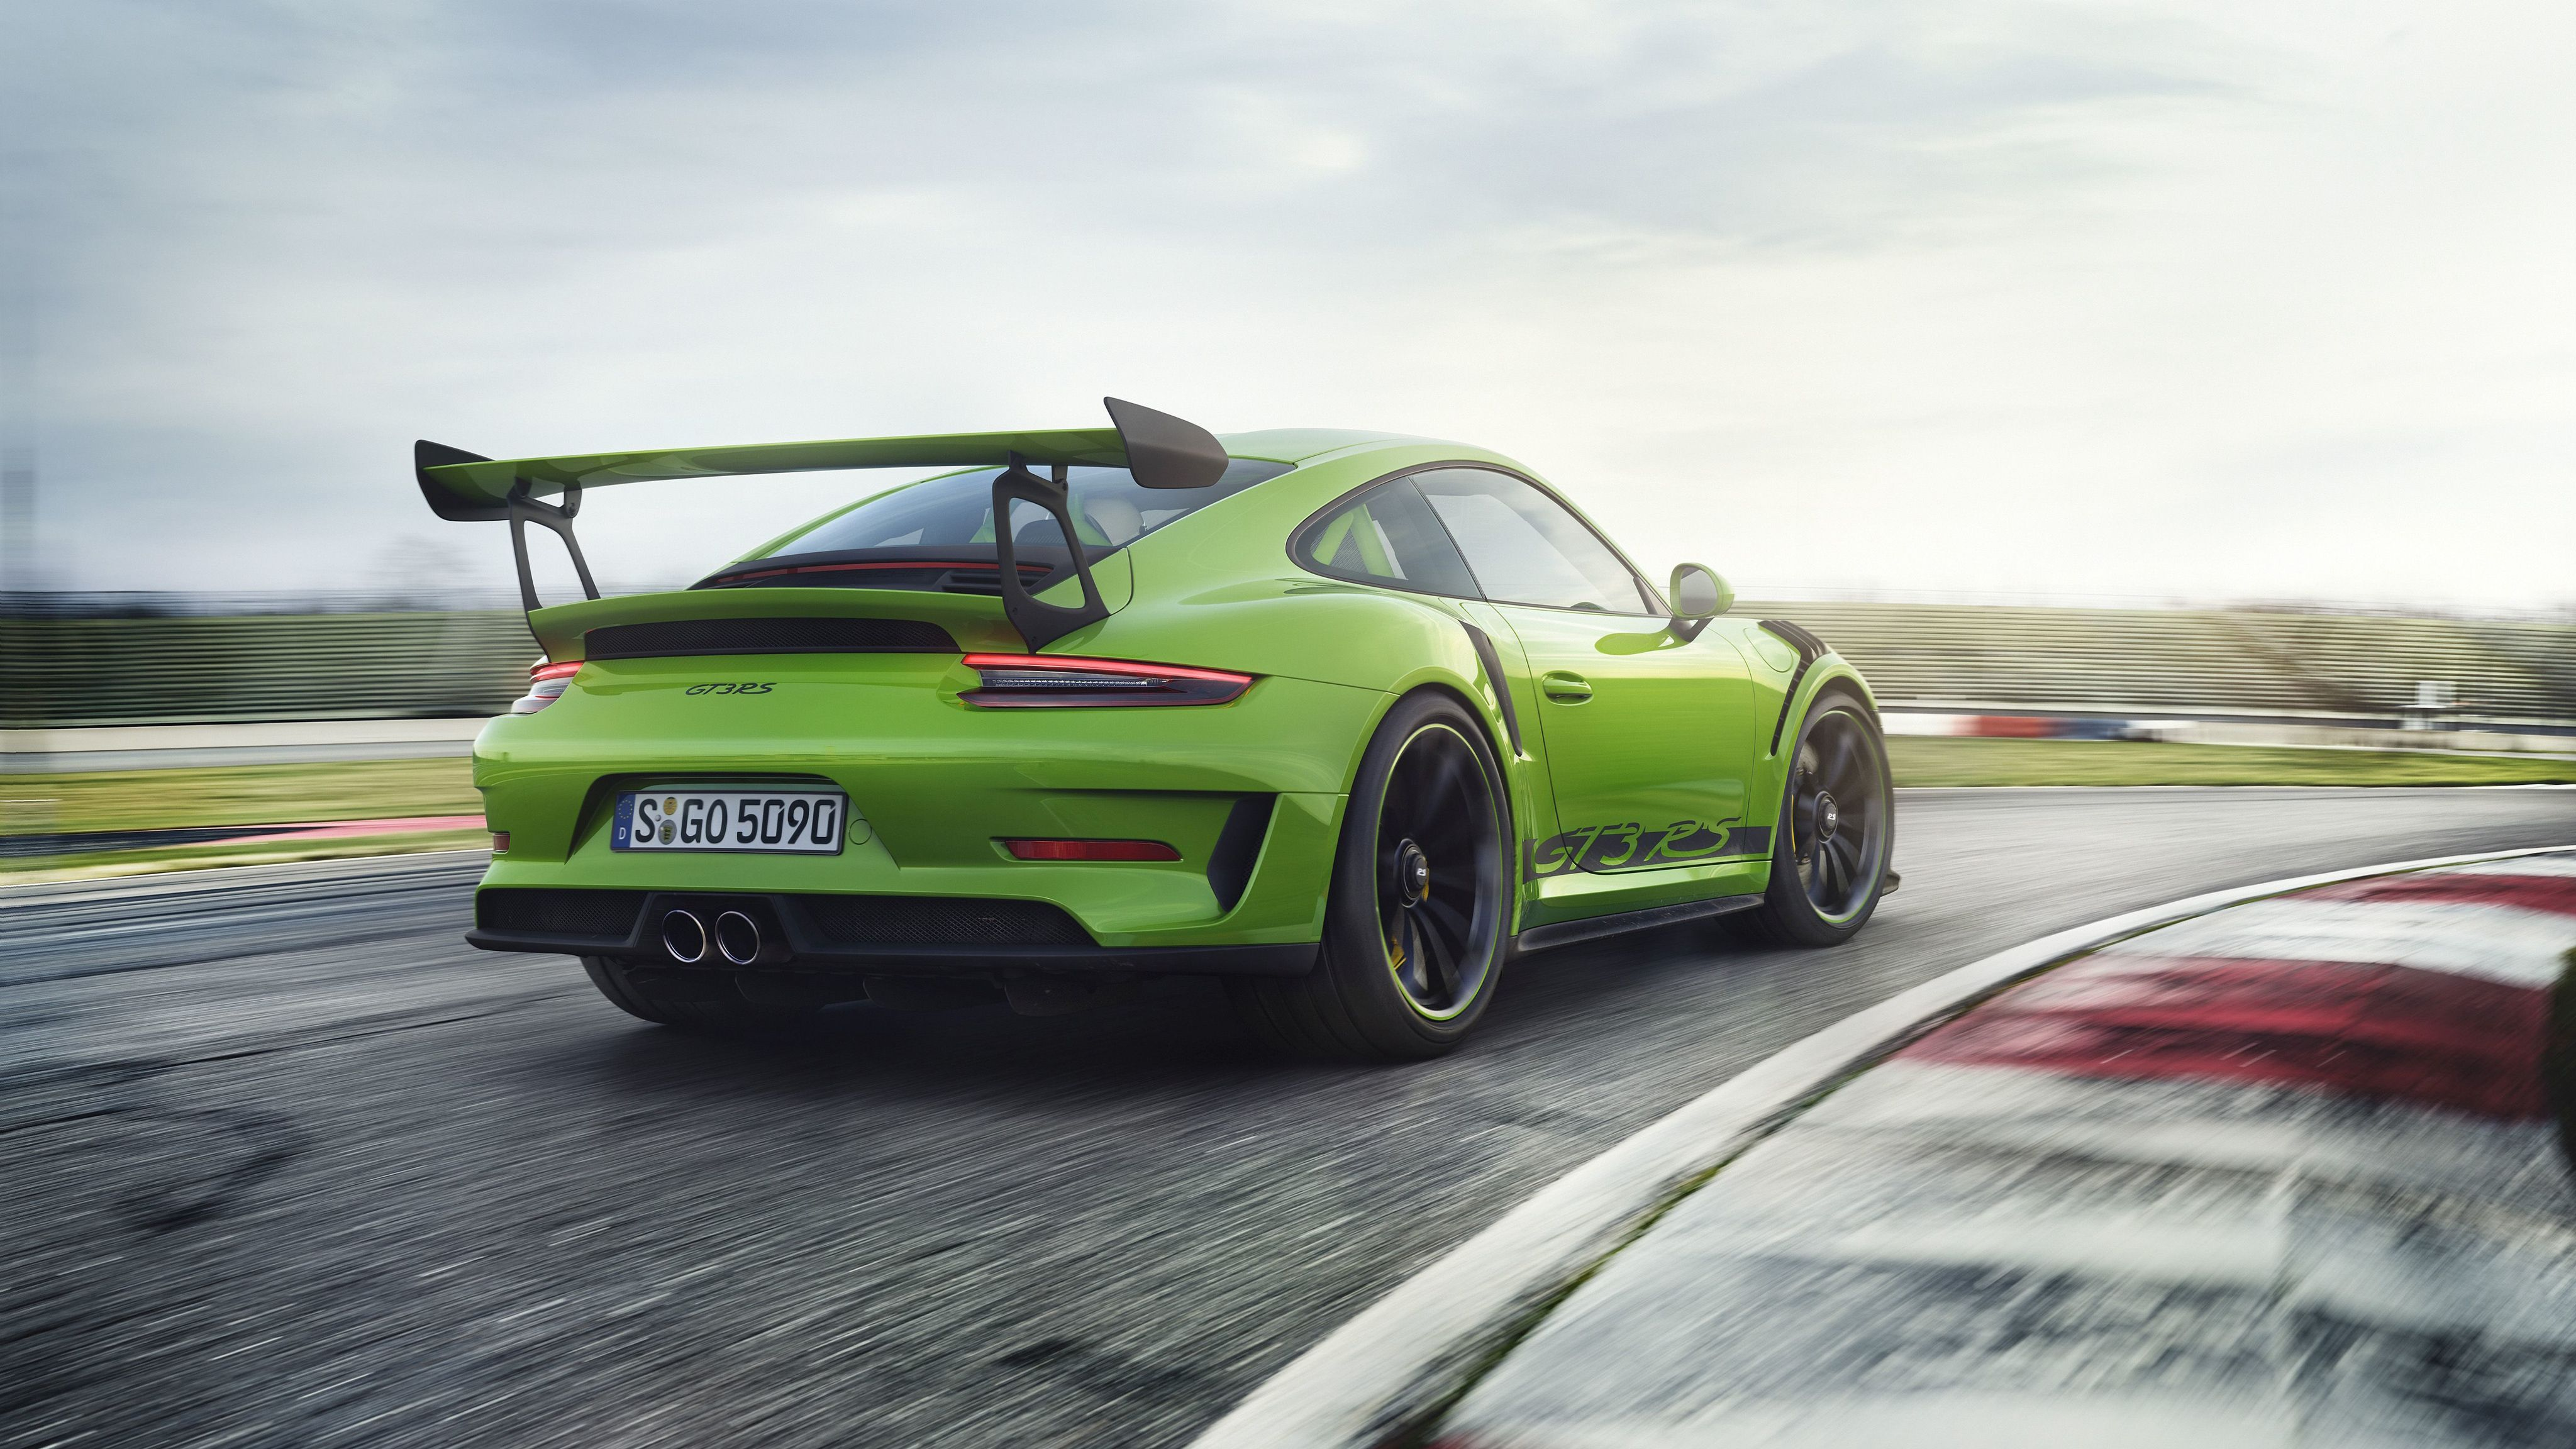 Porsche 911 GT3 RS Wallpapers , Top Free Porsche 911 GT3 RS